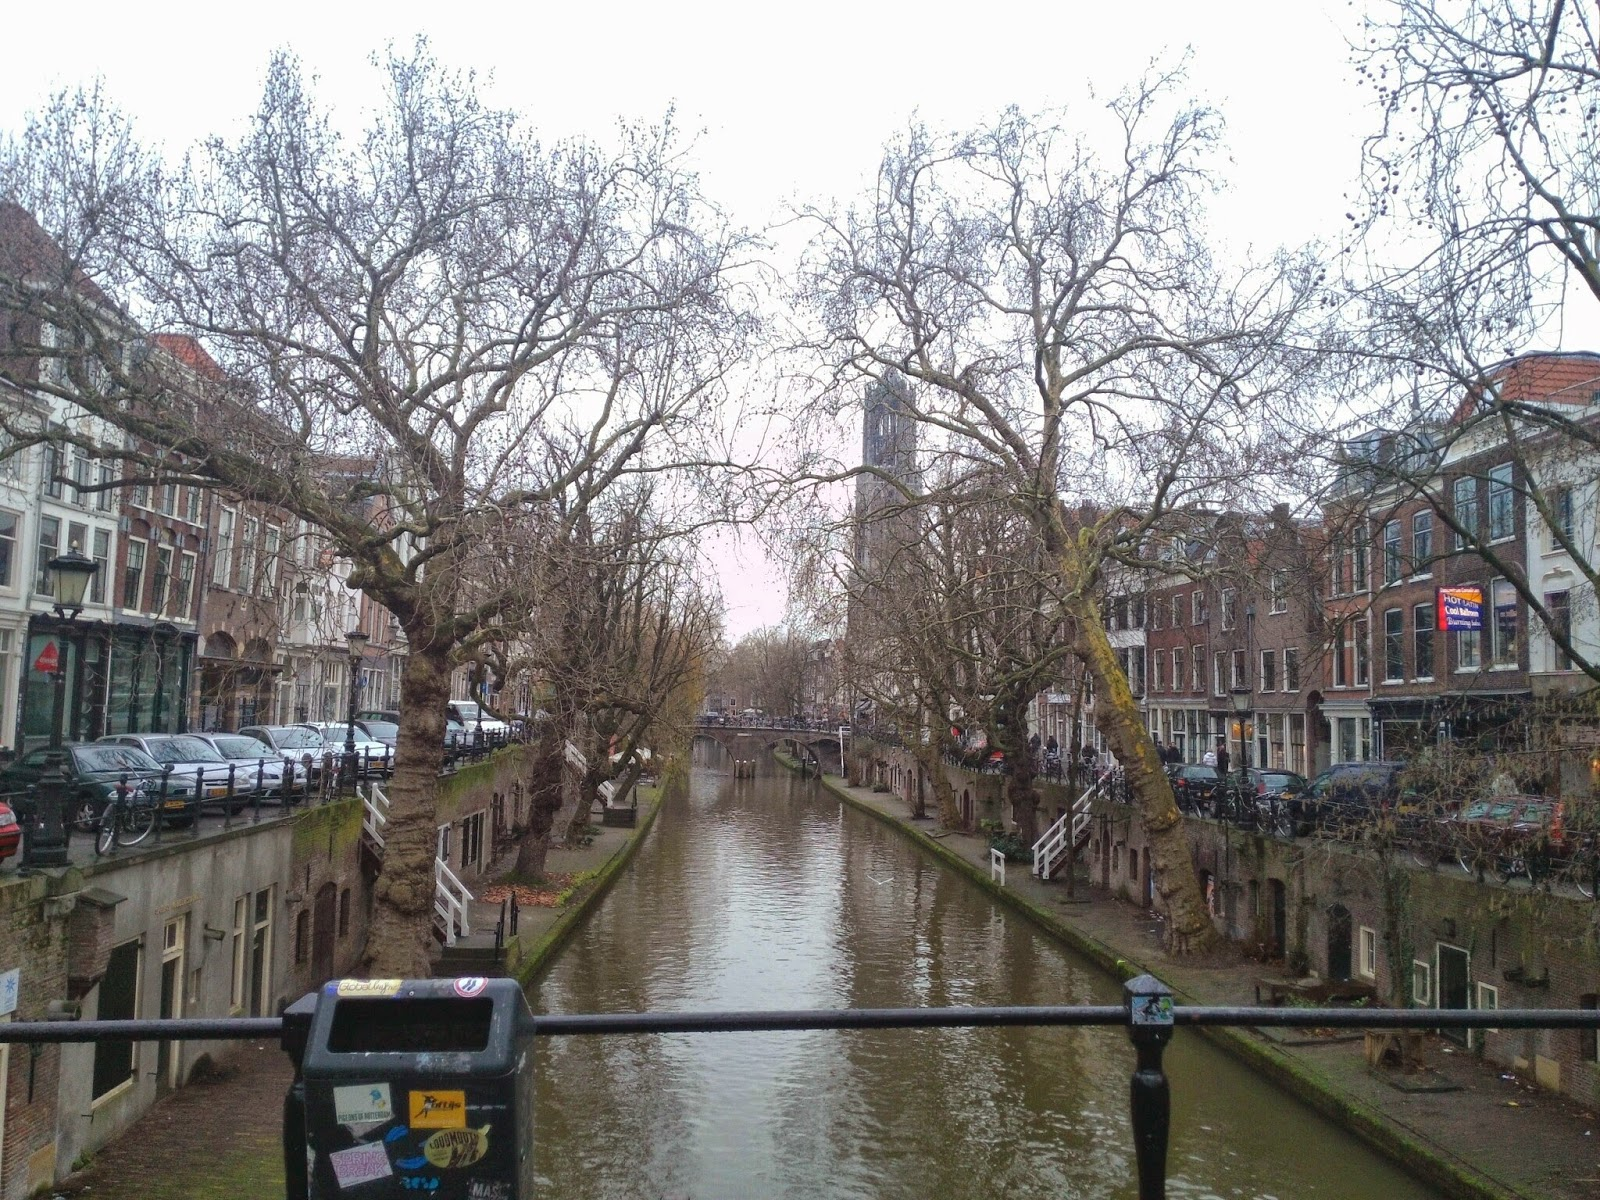 荷蘭烏特勒支風景 Utrecht in The Netherlands